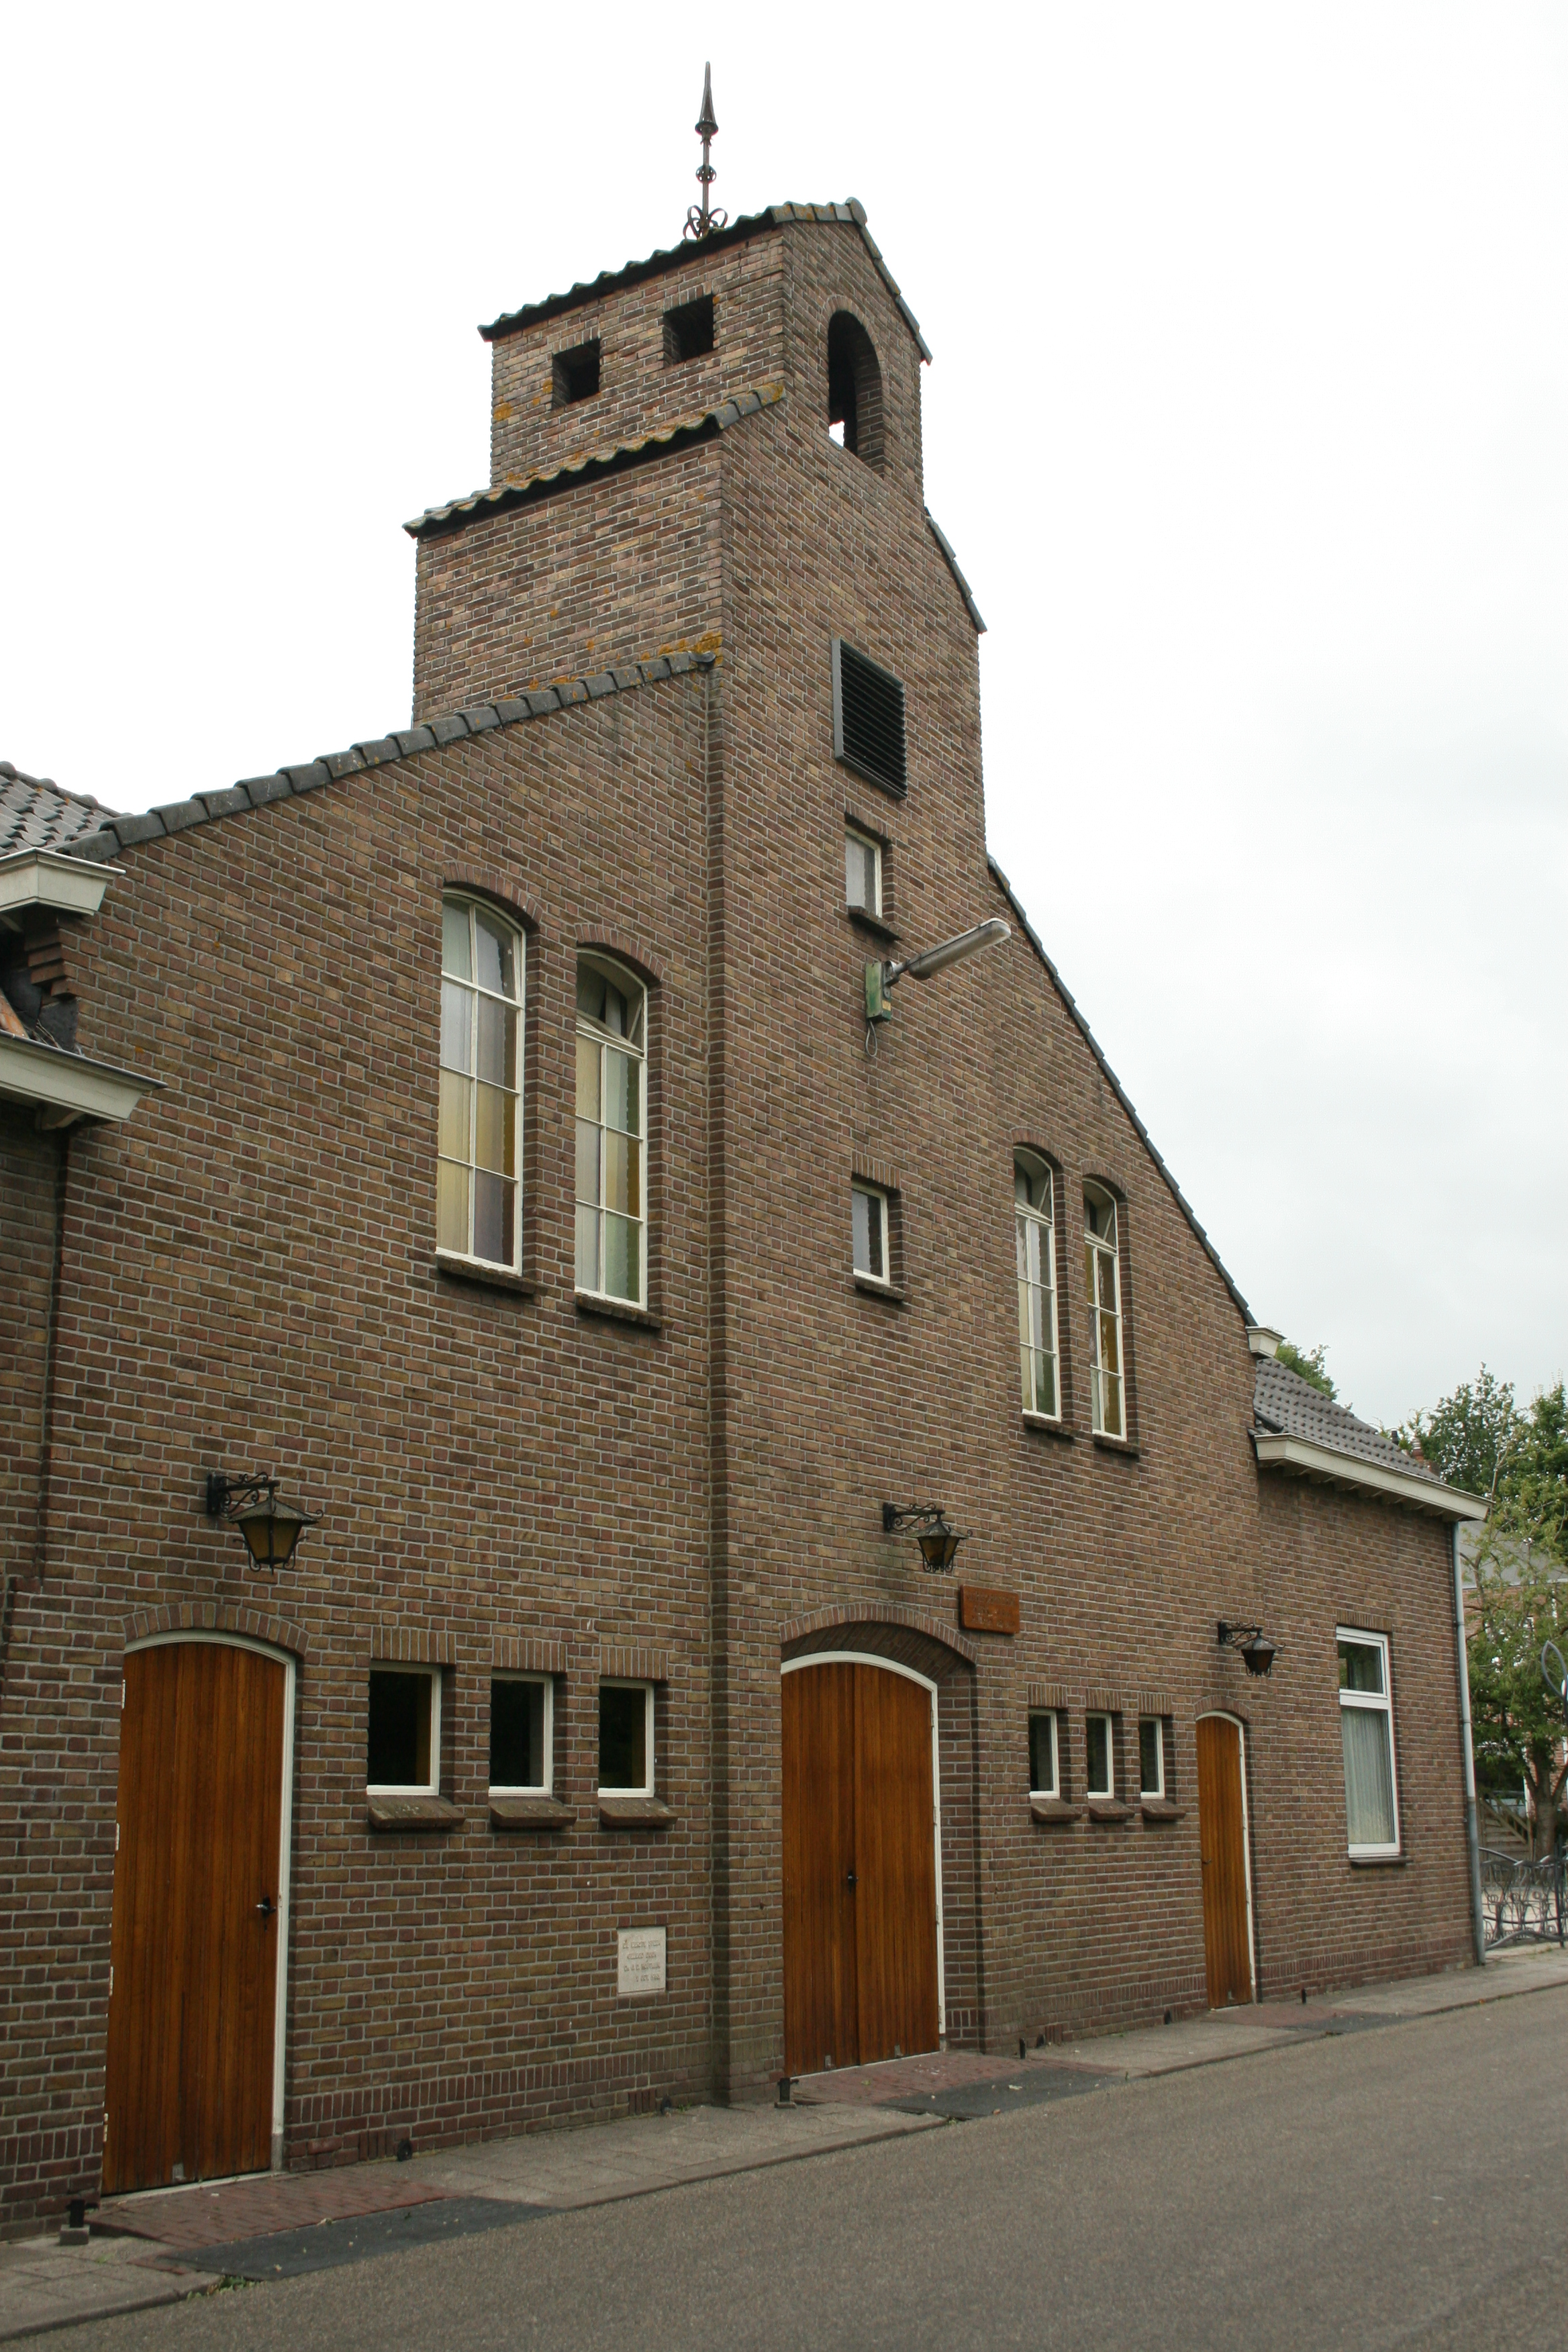 Ds. A. de Braak